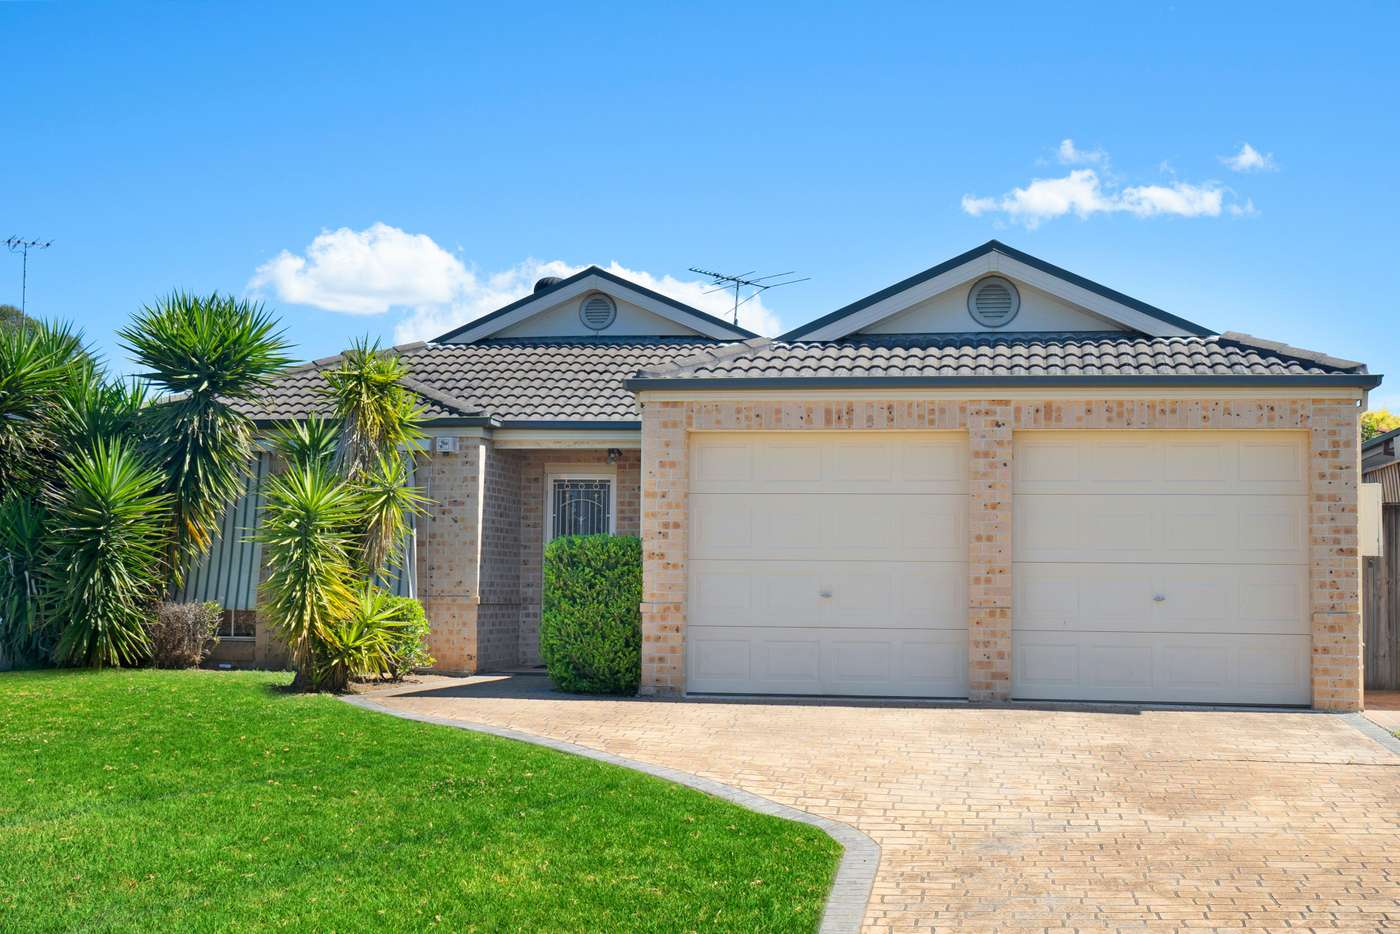 Main view of Homely house listing, 12 Holbrook Circuit, Stanhope Gardens NSW 2768